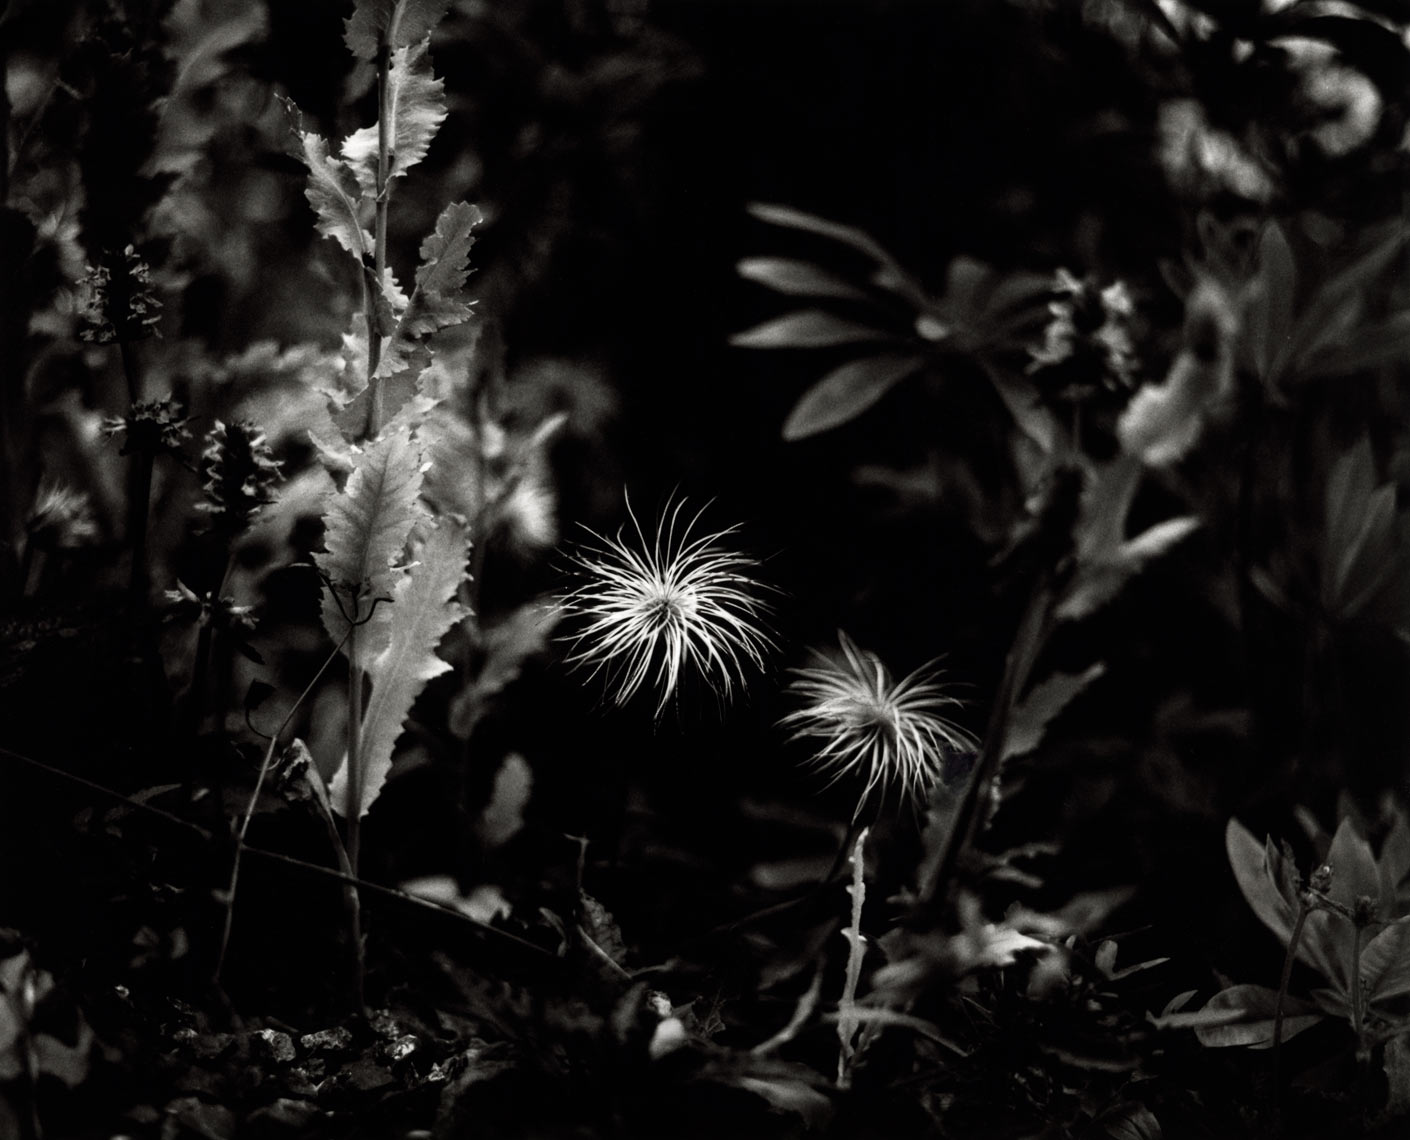 David Lebe; Clematis Tangutica, 1997, garden black and white photograph